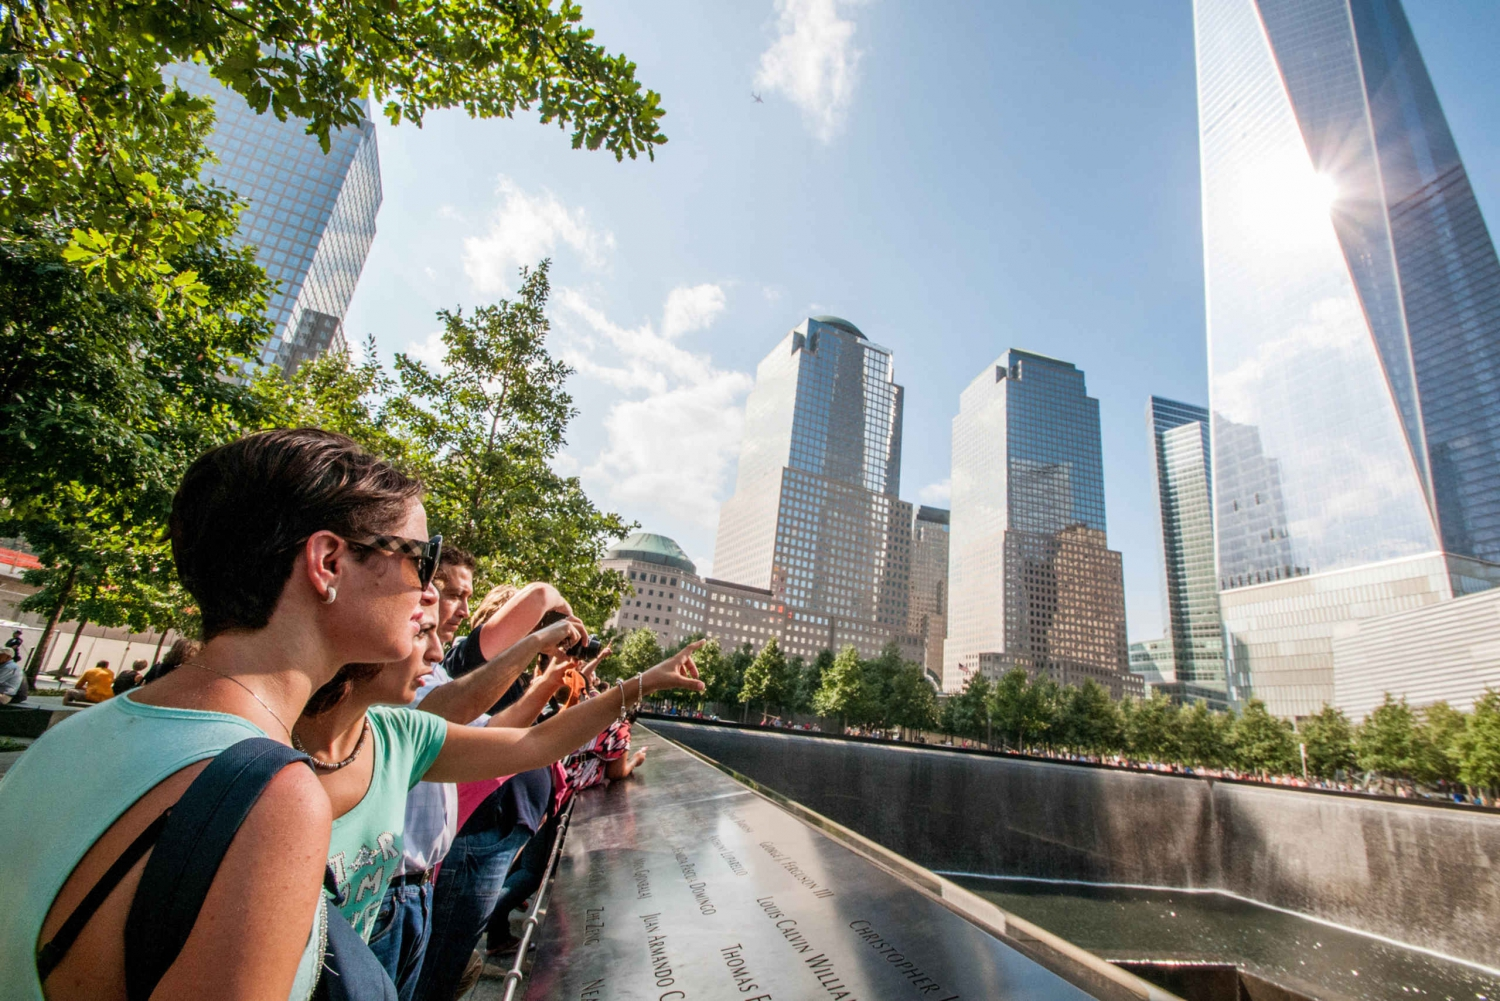 New 1.5-Hour Tour of Wall Street and Ground Zero